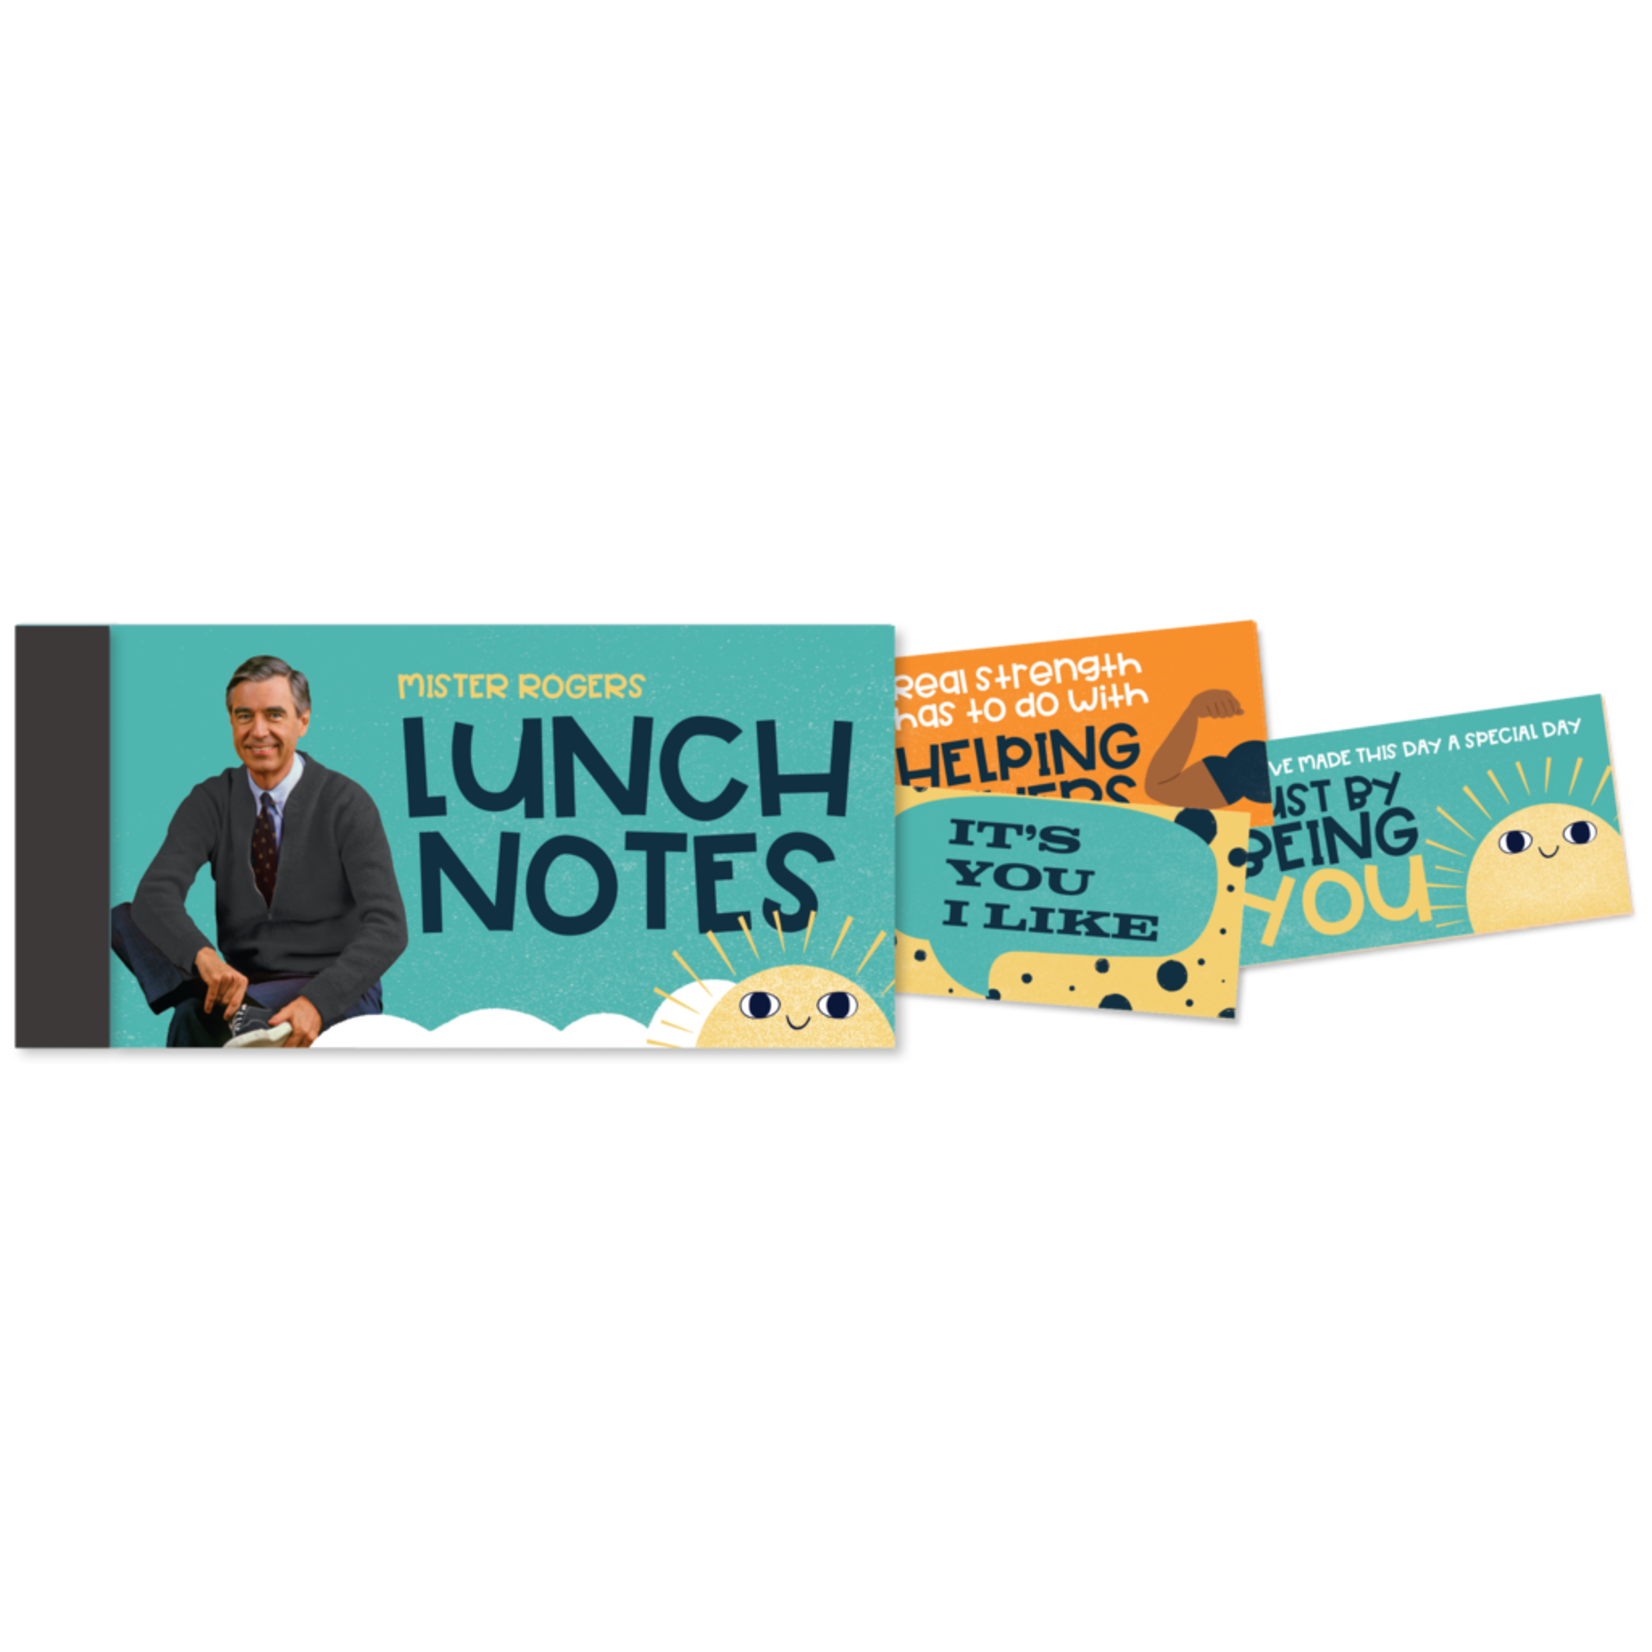 papersalt Lunch Notes:  Mister Rogers